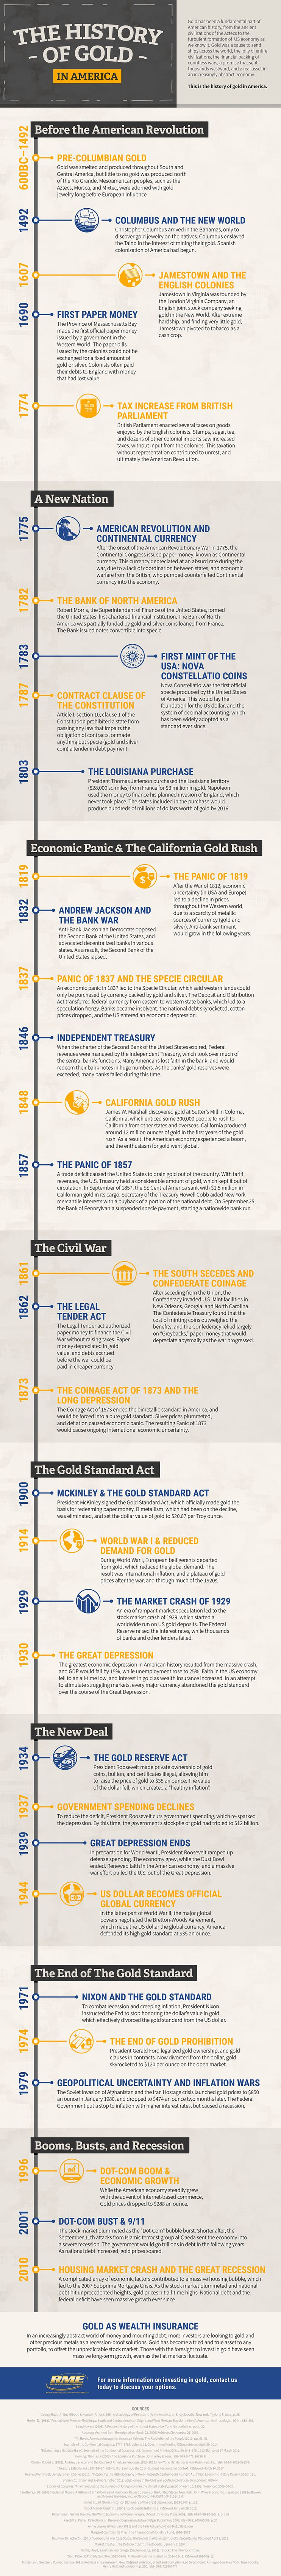 The History Of Gold in America Infographic